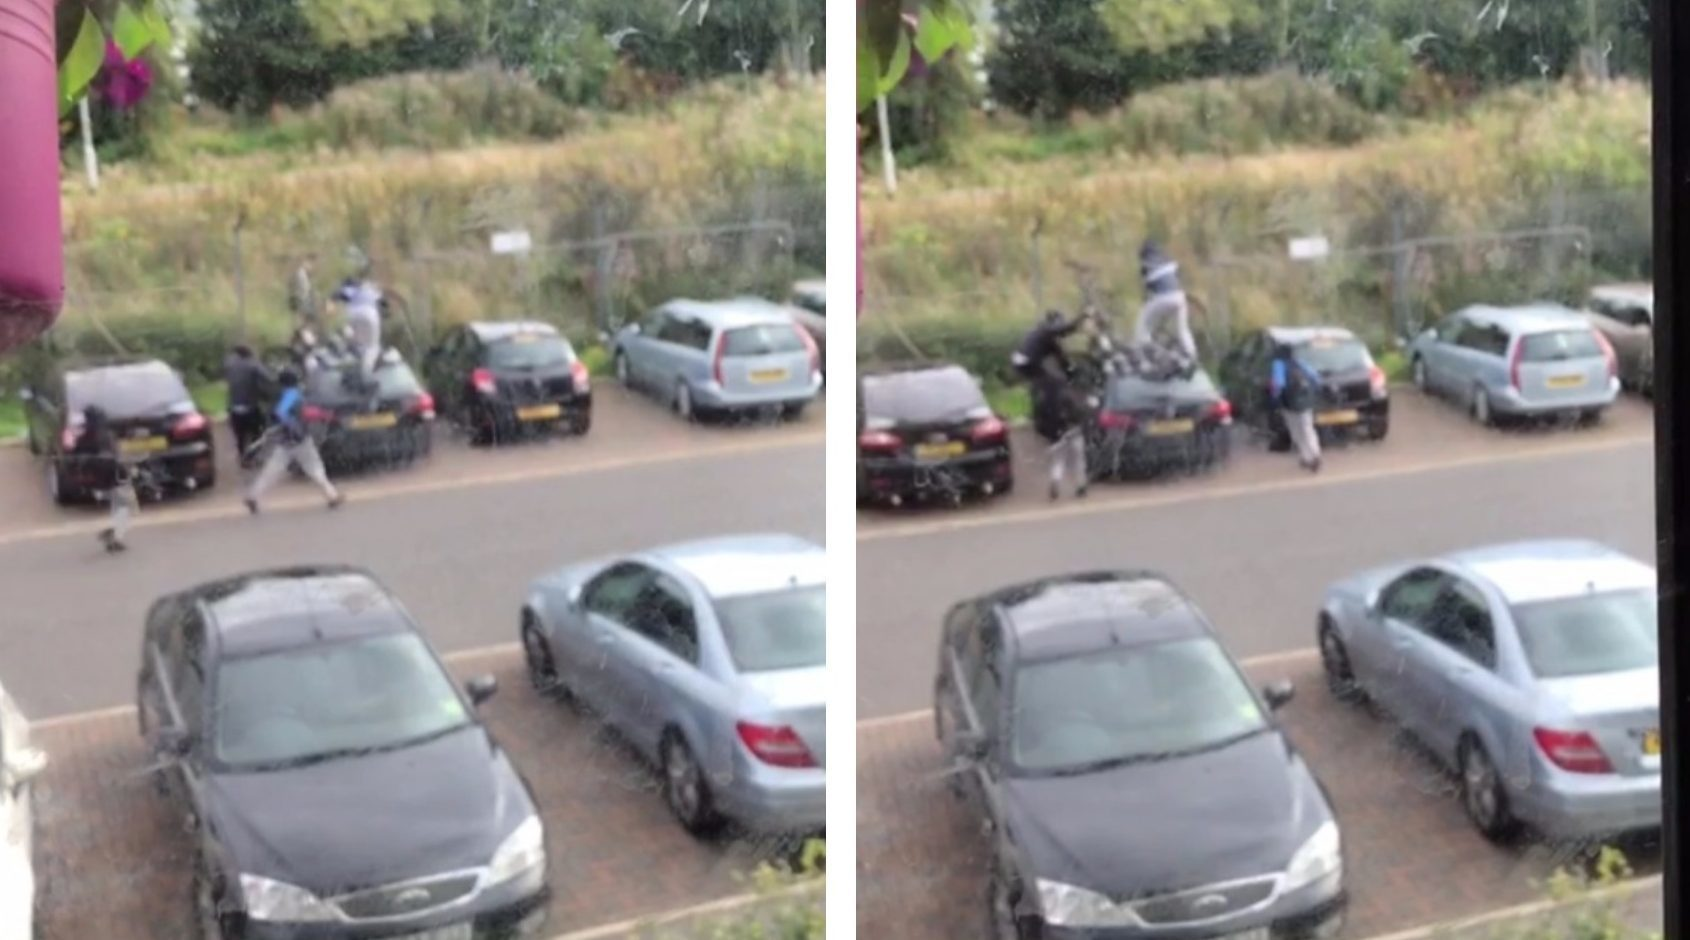 The moment the bikes were ripped from a car by yobs